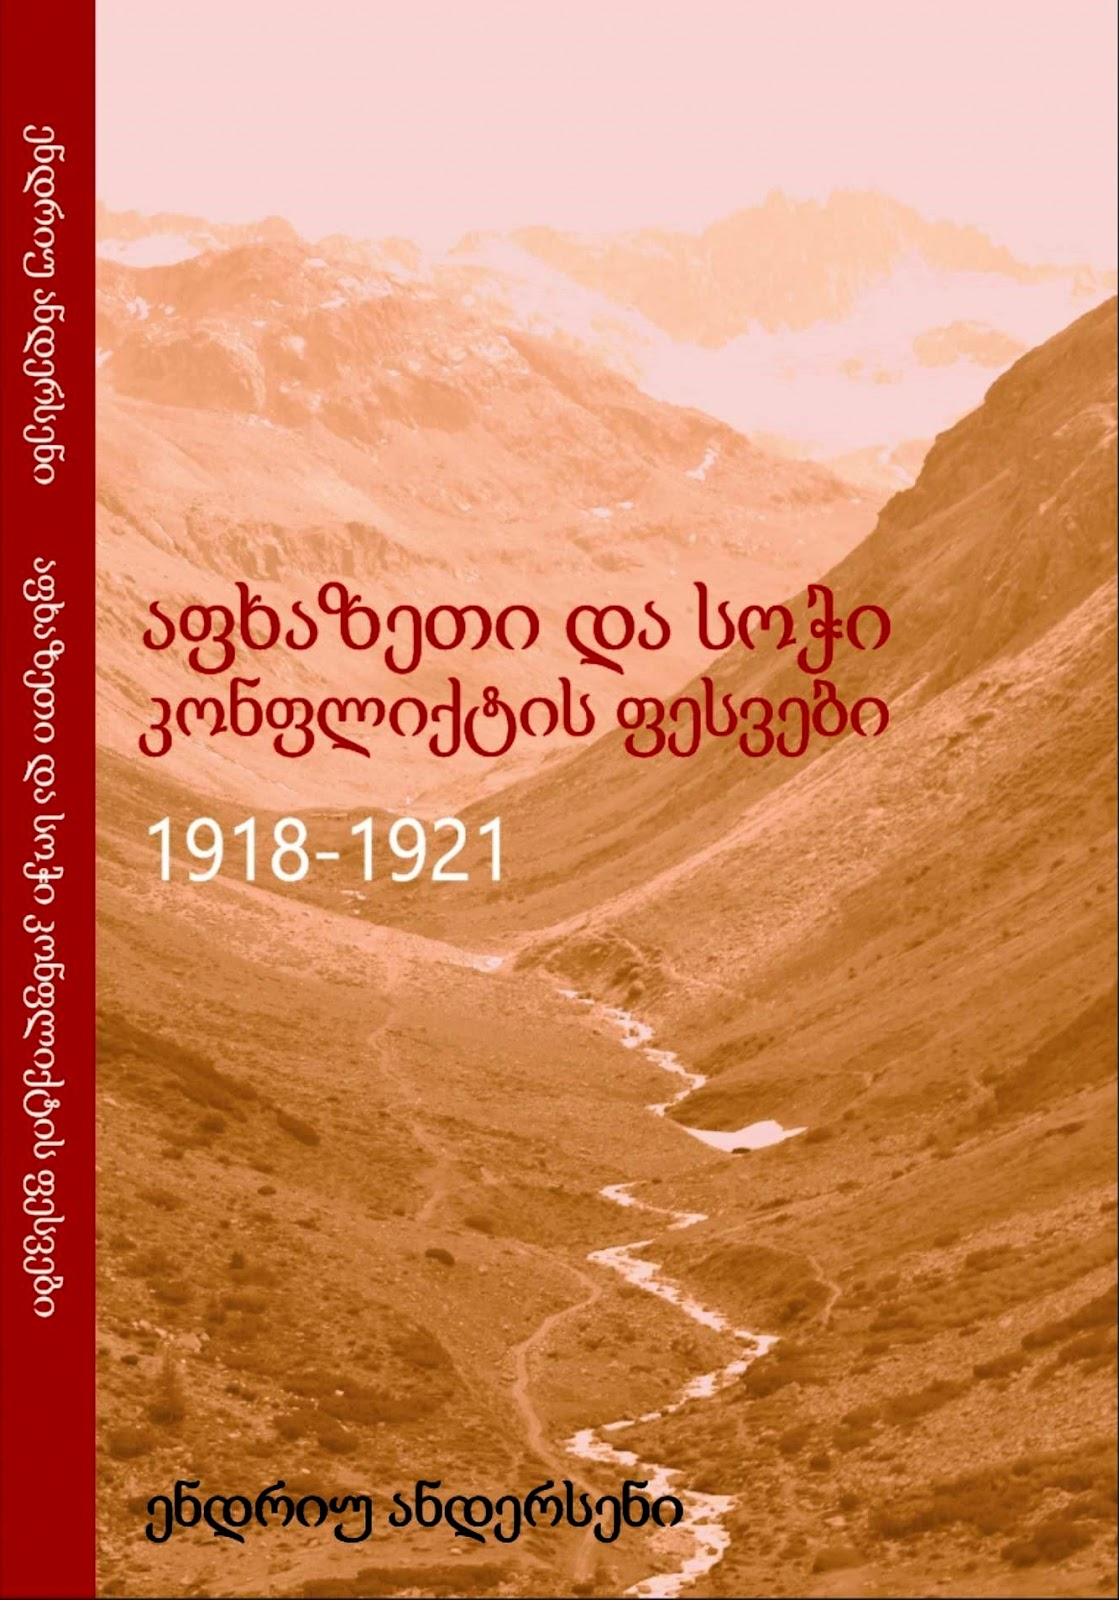 for those who can read in georgian i cannot here is the introduction to the book